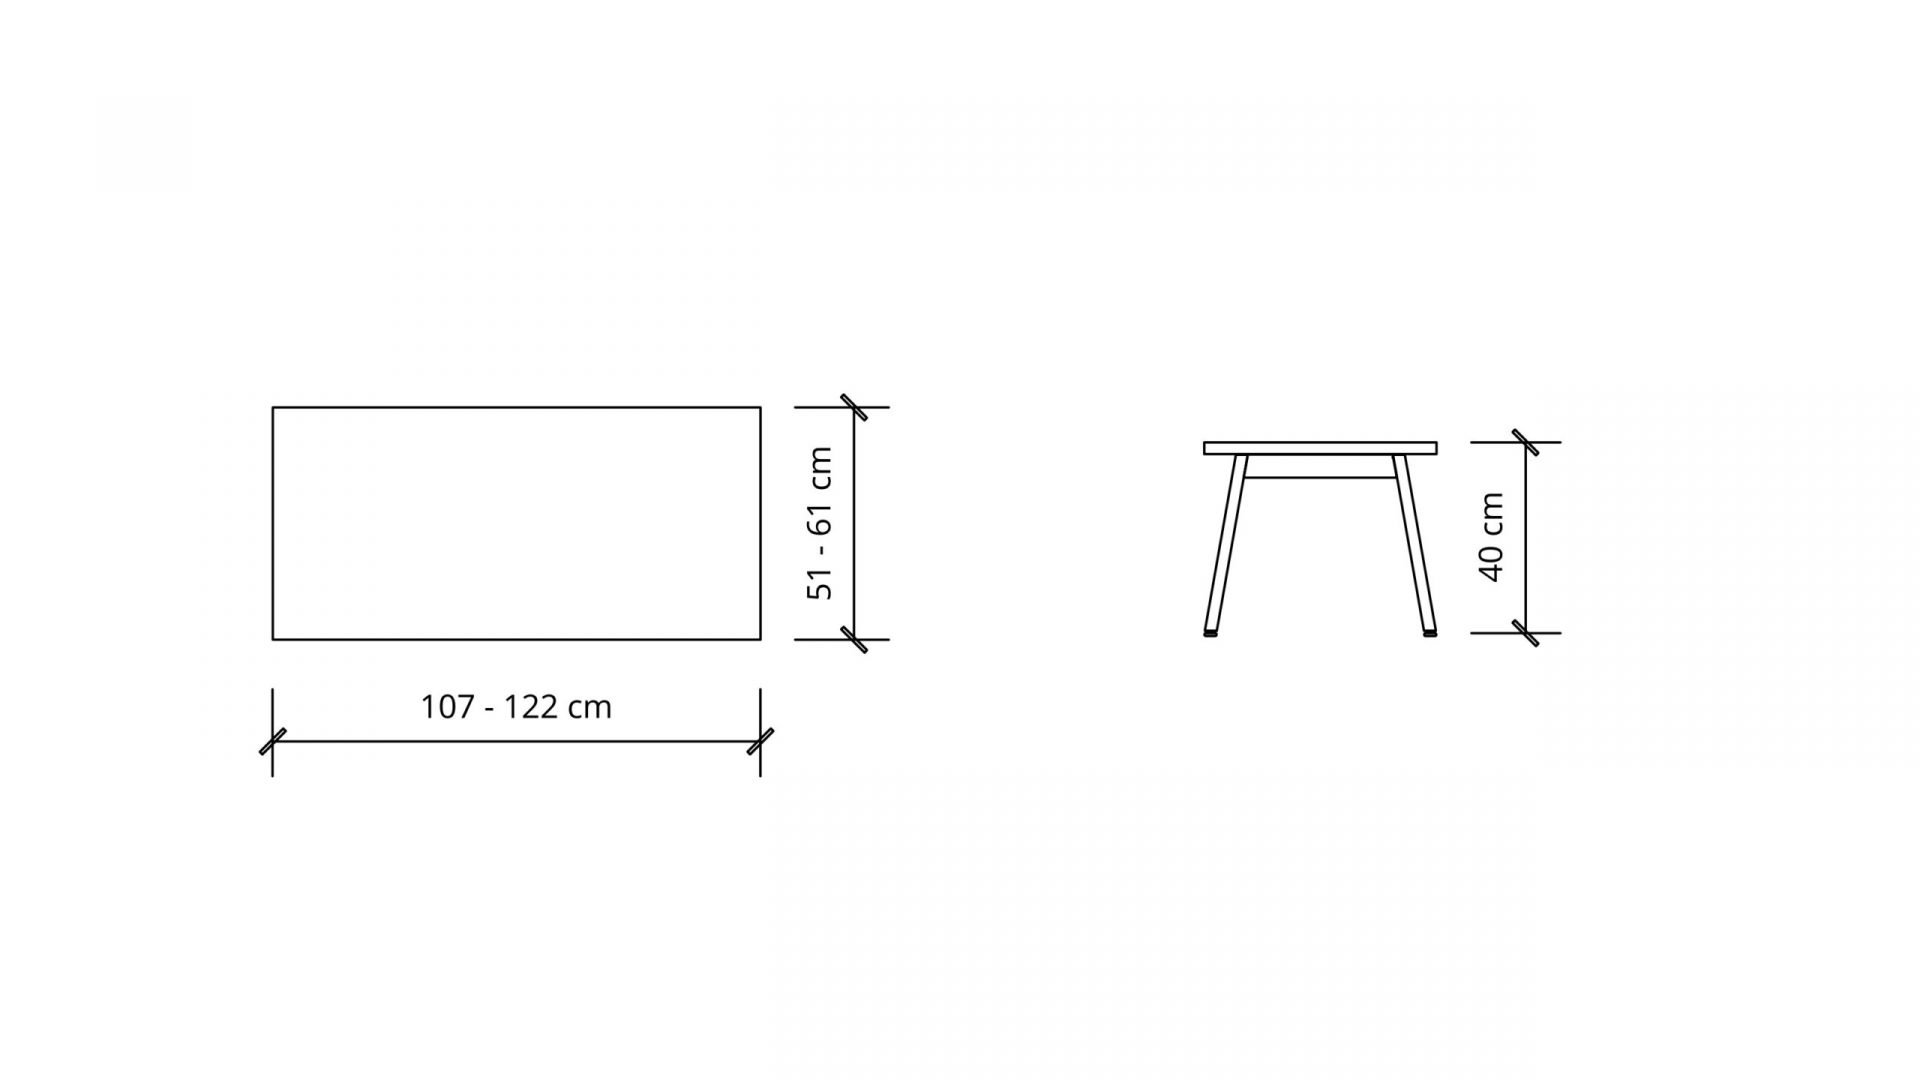 Dimensions of Rectangular Coffee Table 1657